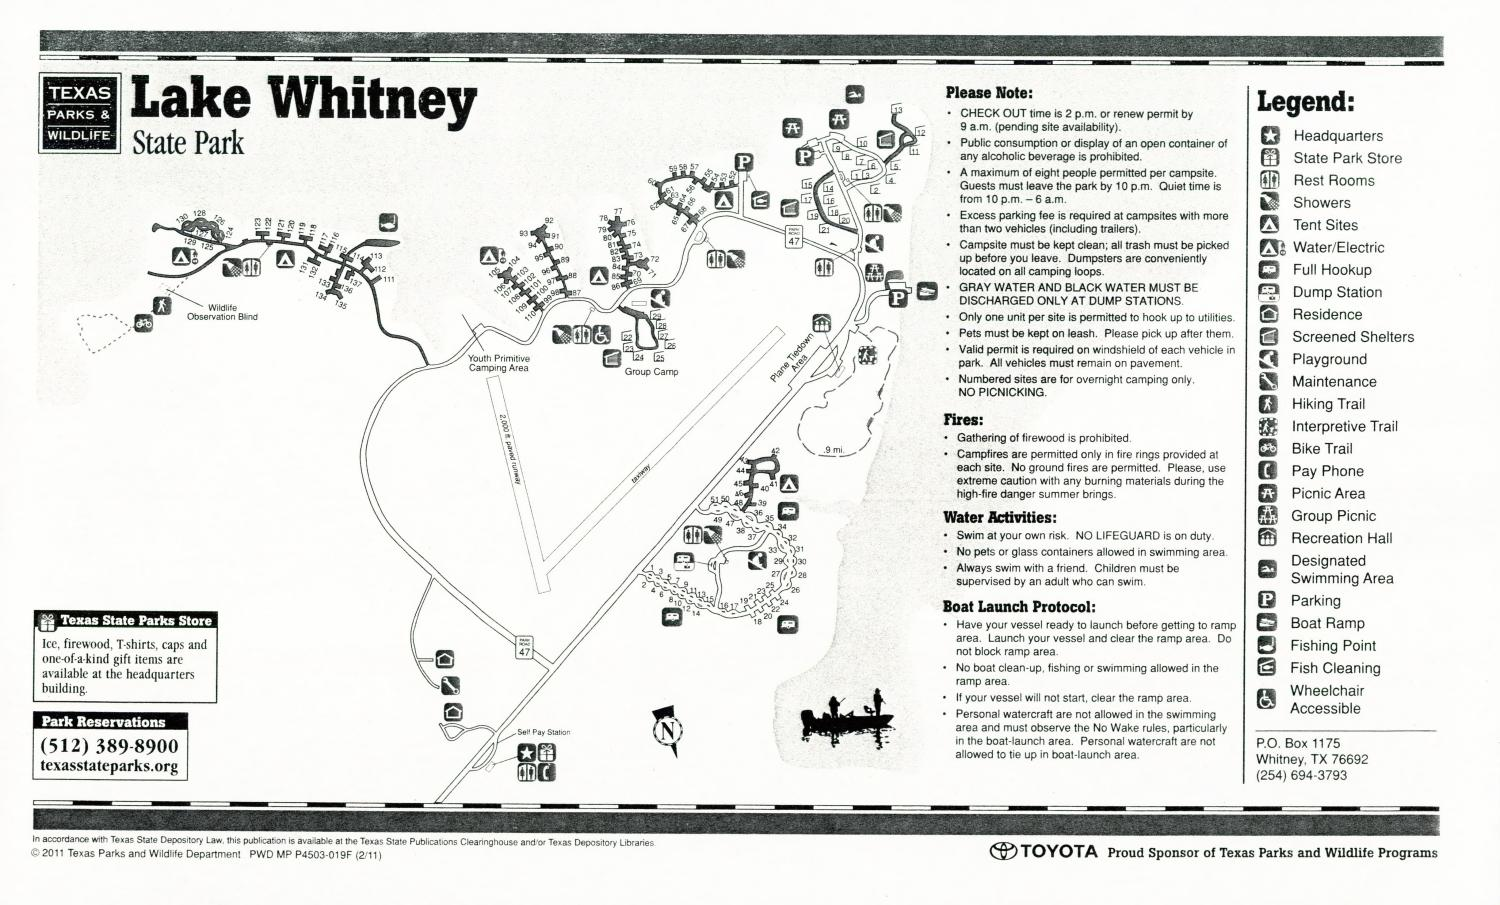 Lake Whitney State Park, Map of the Lake Whitney State Park outlining hiking trails and highlighting activities, facilities, and other features such as bathrooms, lodgings, water/electric, etc. It also contains general information for the park and for the Texas Parks and Wildlife Department. Additionally, there are various advertisements, including one with information about the Texas State Parks Pass.,